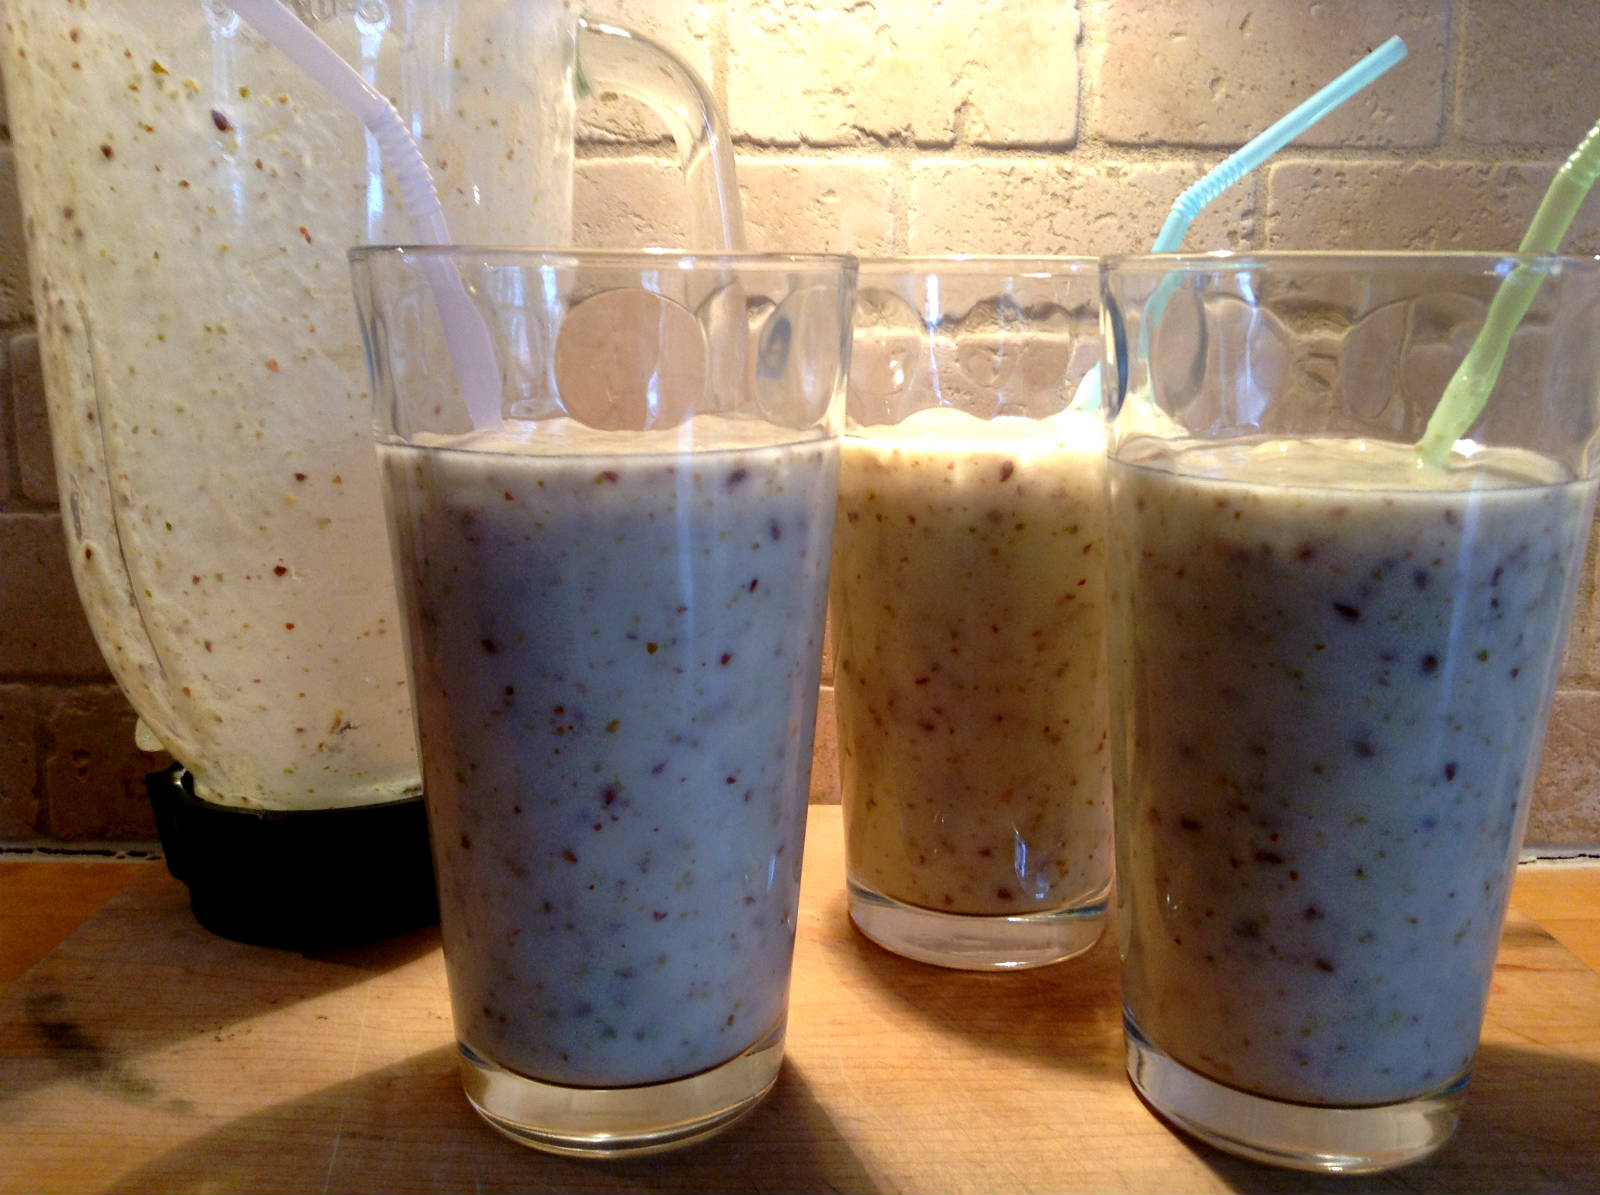 Colon Cleansing - Flaxseed Flour and Kefir